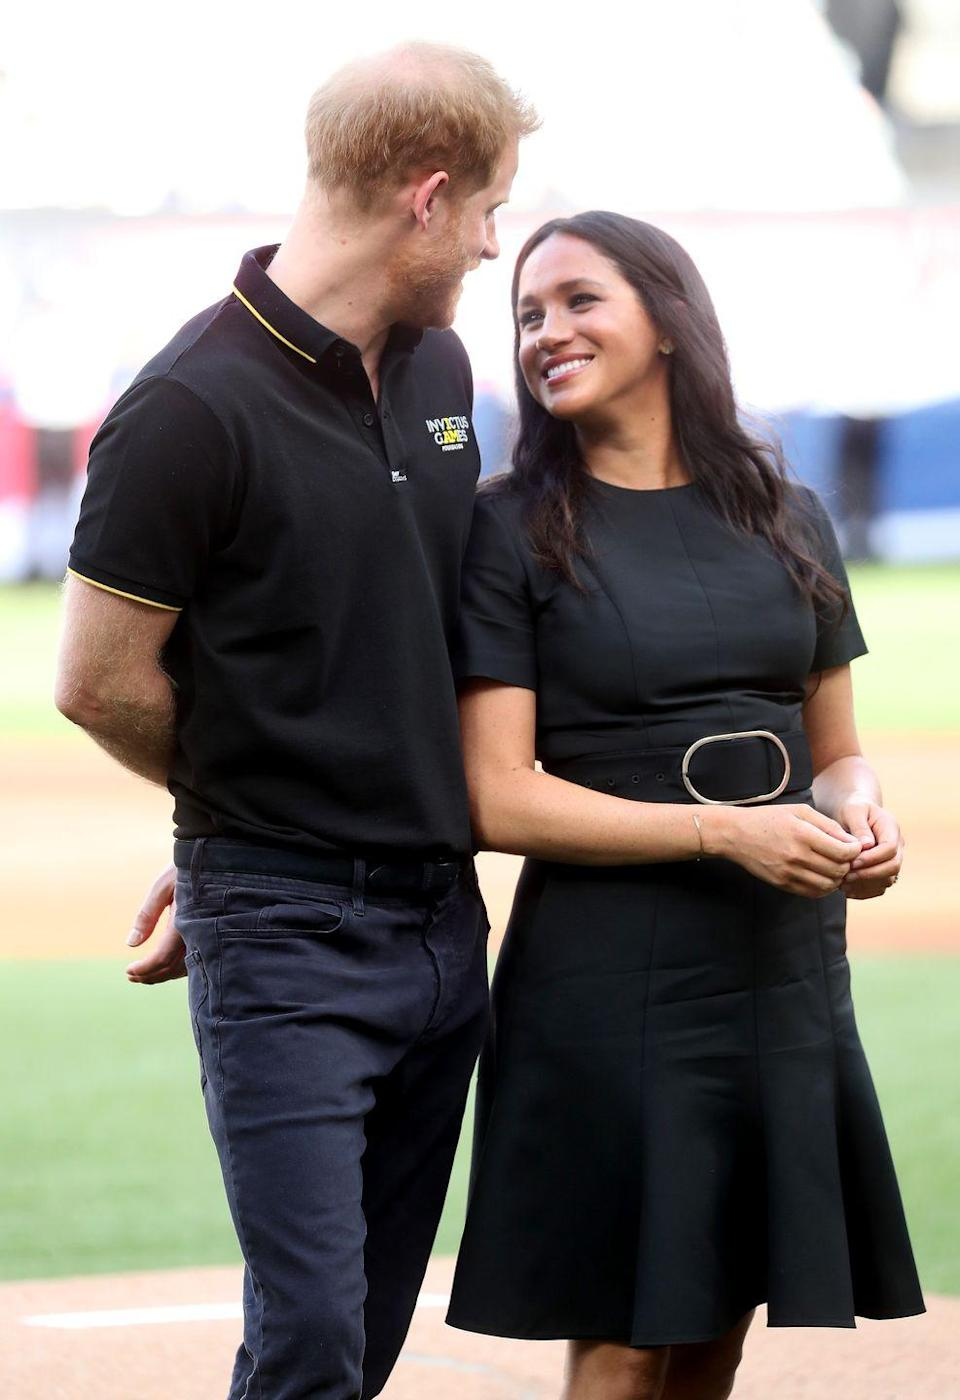 <p>Harry smiles down at Meghan as they attend the Boston Red Sox against the New York Yankees baseball game at London Stadium.</p>